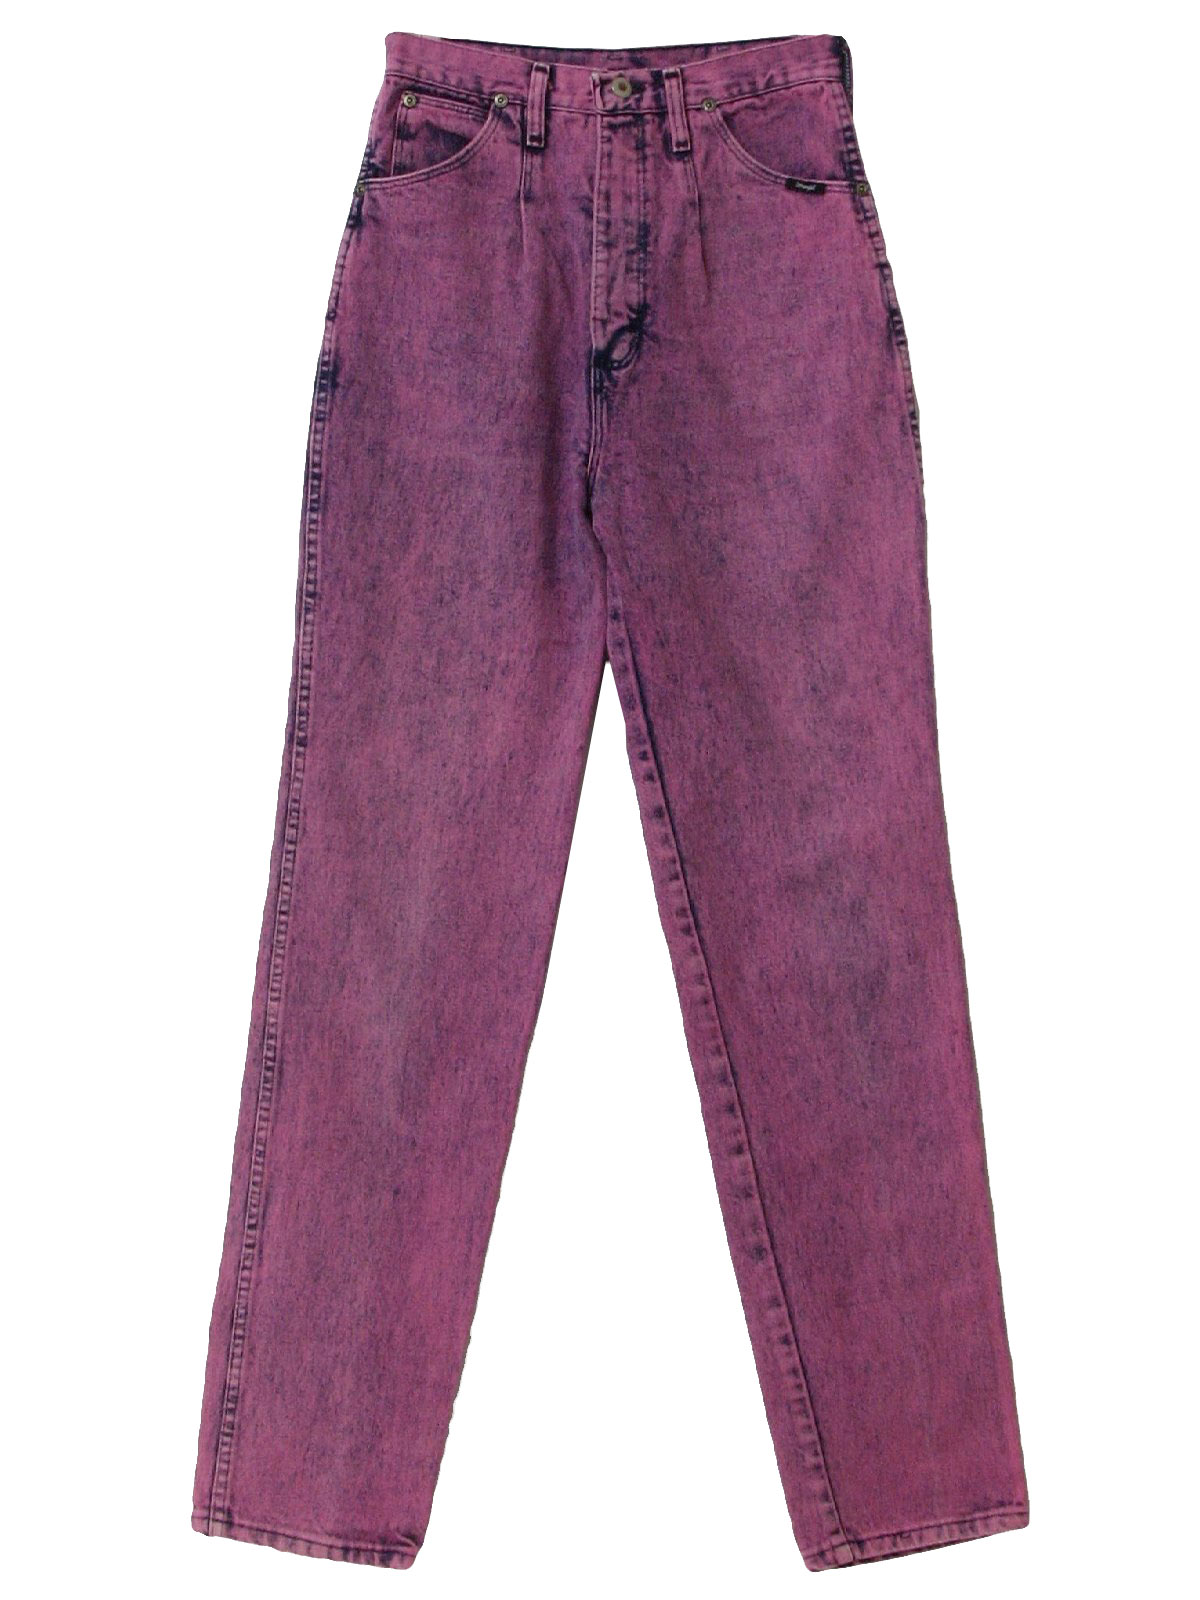 1980 39 s pants wrangler made in usa 80s wrangler made in usa womens navy and pinkish purple. Black Bedroom Furniture Sets. Home Design Ideas